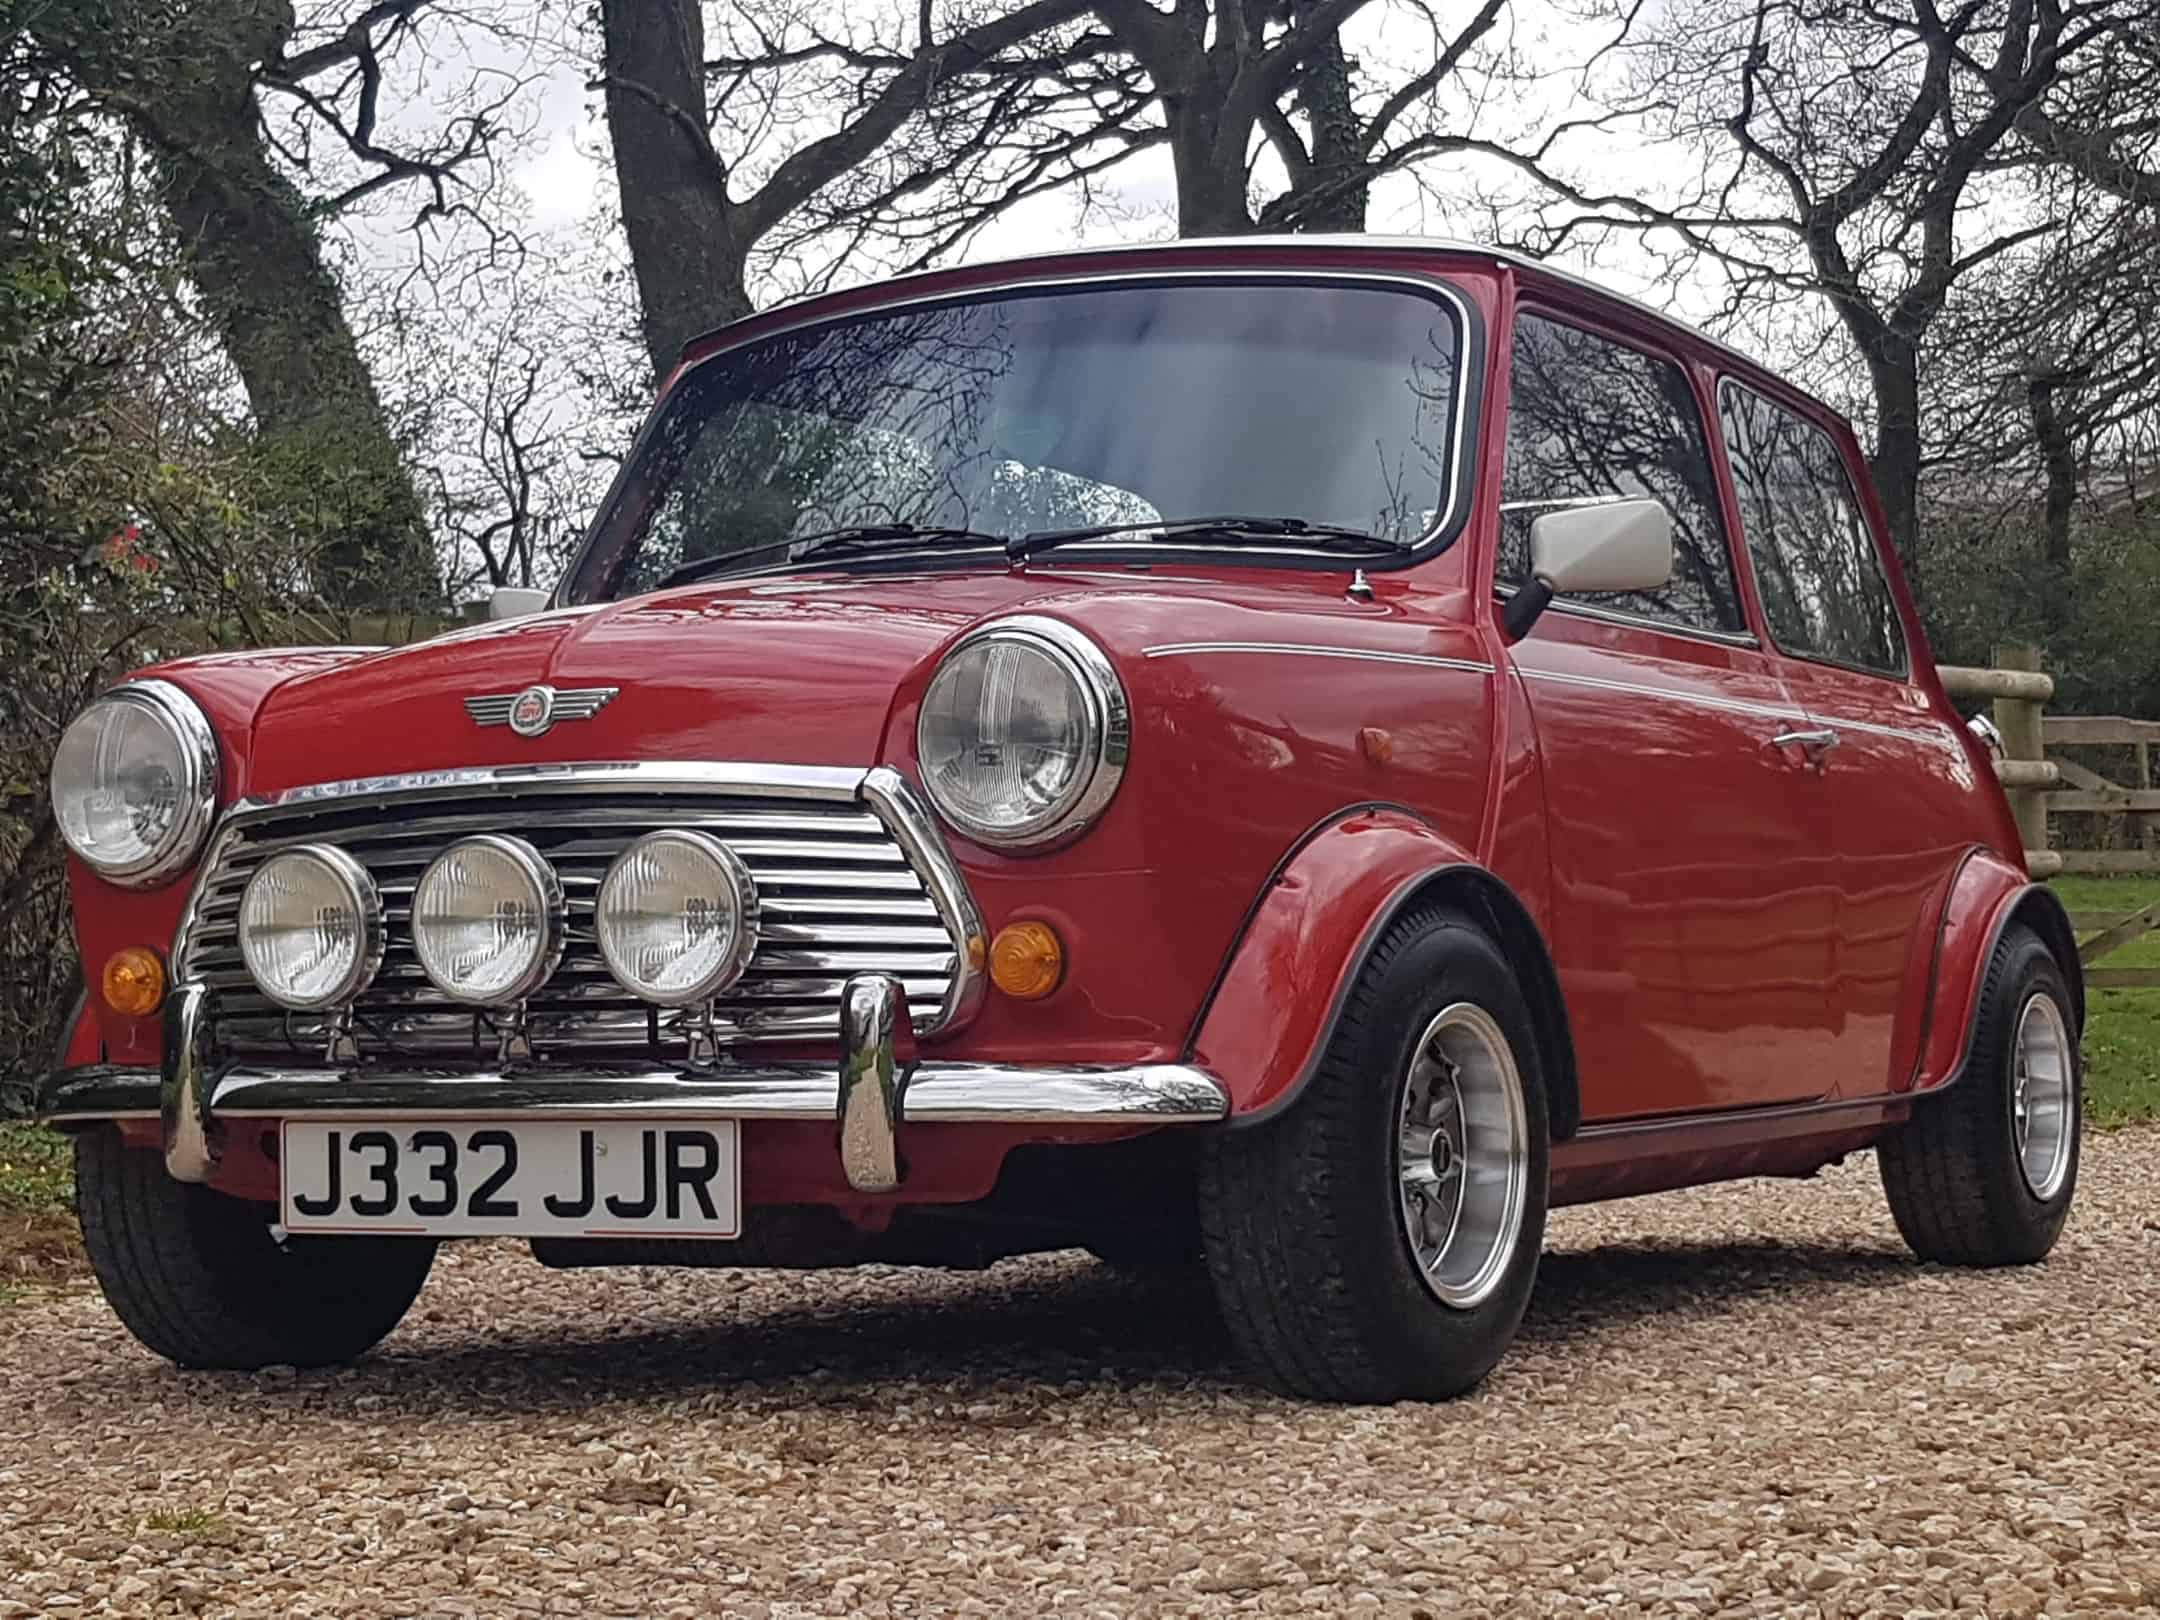 ** NOW SOLD ** 1991 Rover Mini Cooper In fantastic condition.